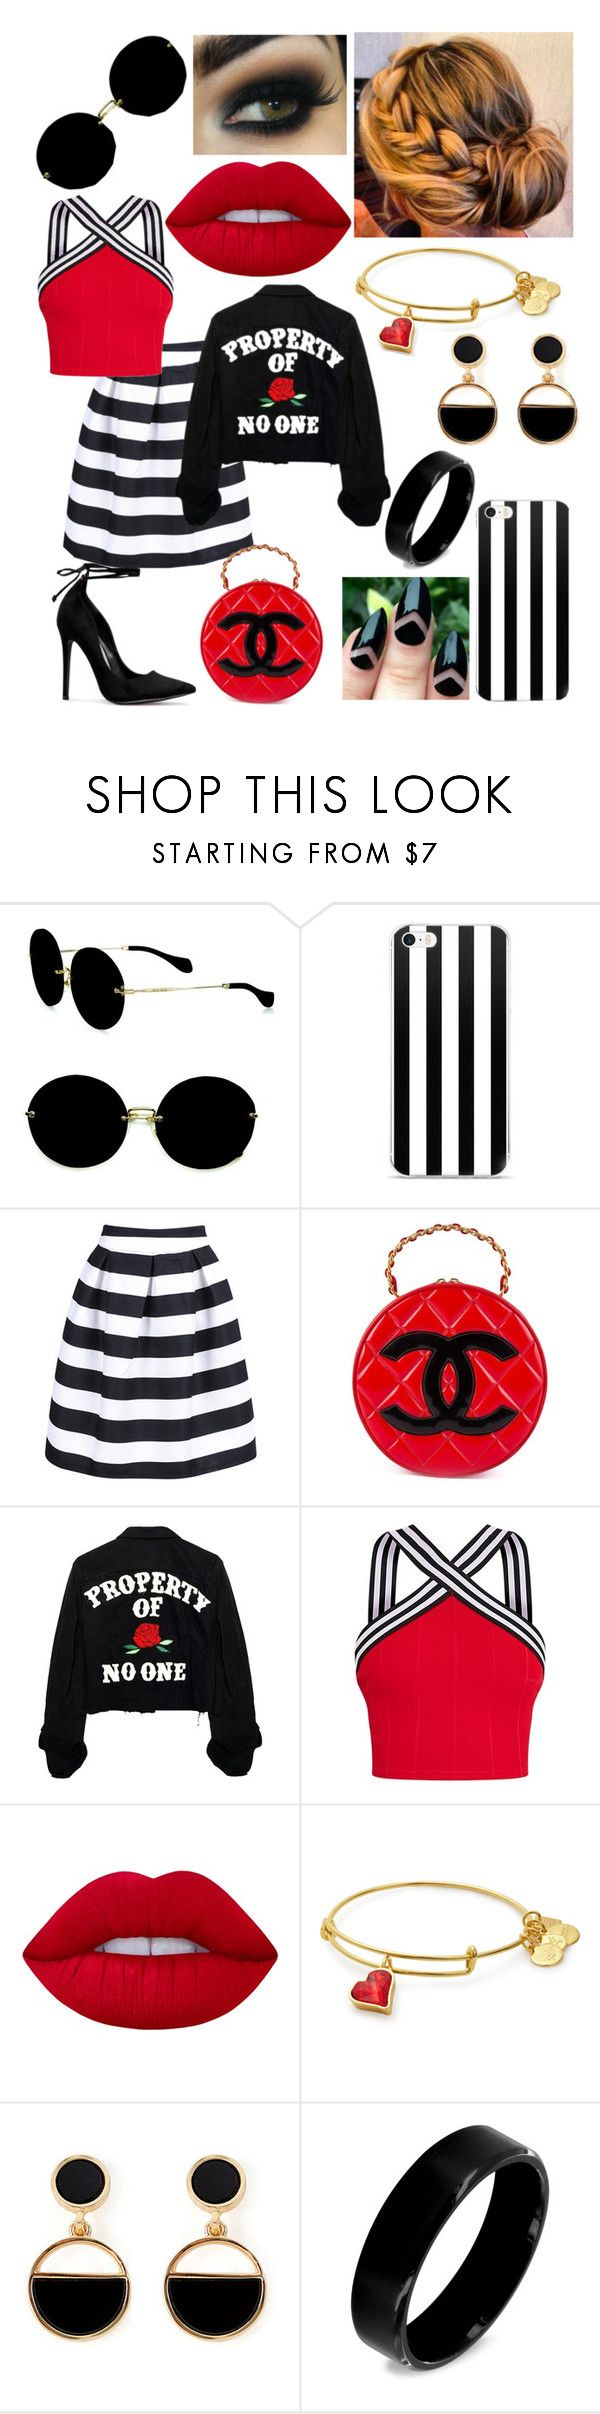 """""""Polyversary"""" by magoo3514 ❤ liked on Polyvore featuring Miu Miu, WithChic, Chanel, Lime Crime, Warehouse, West Coast Jewelry, polyversary and contestentry"""